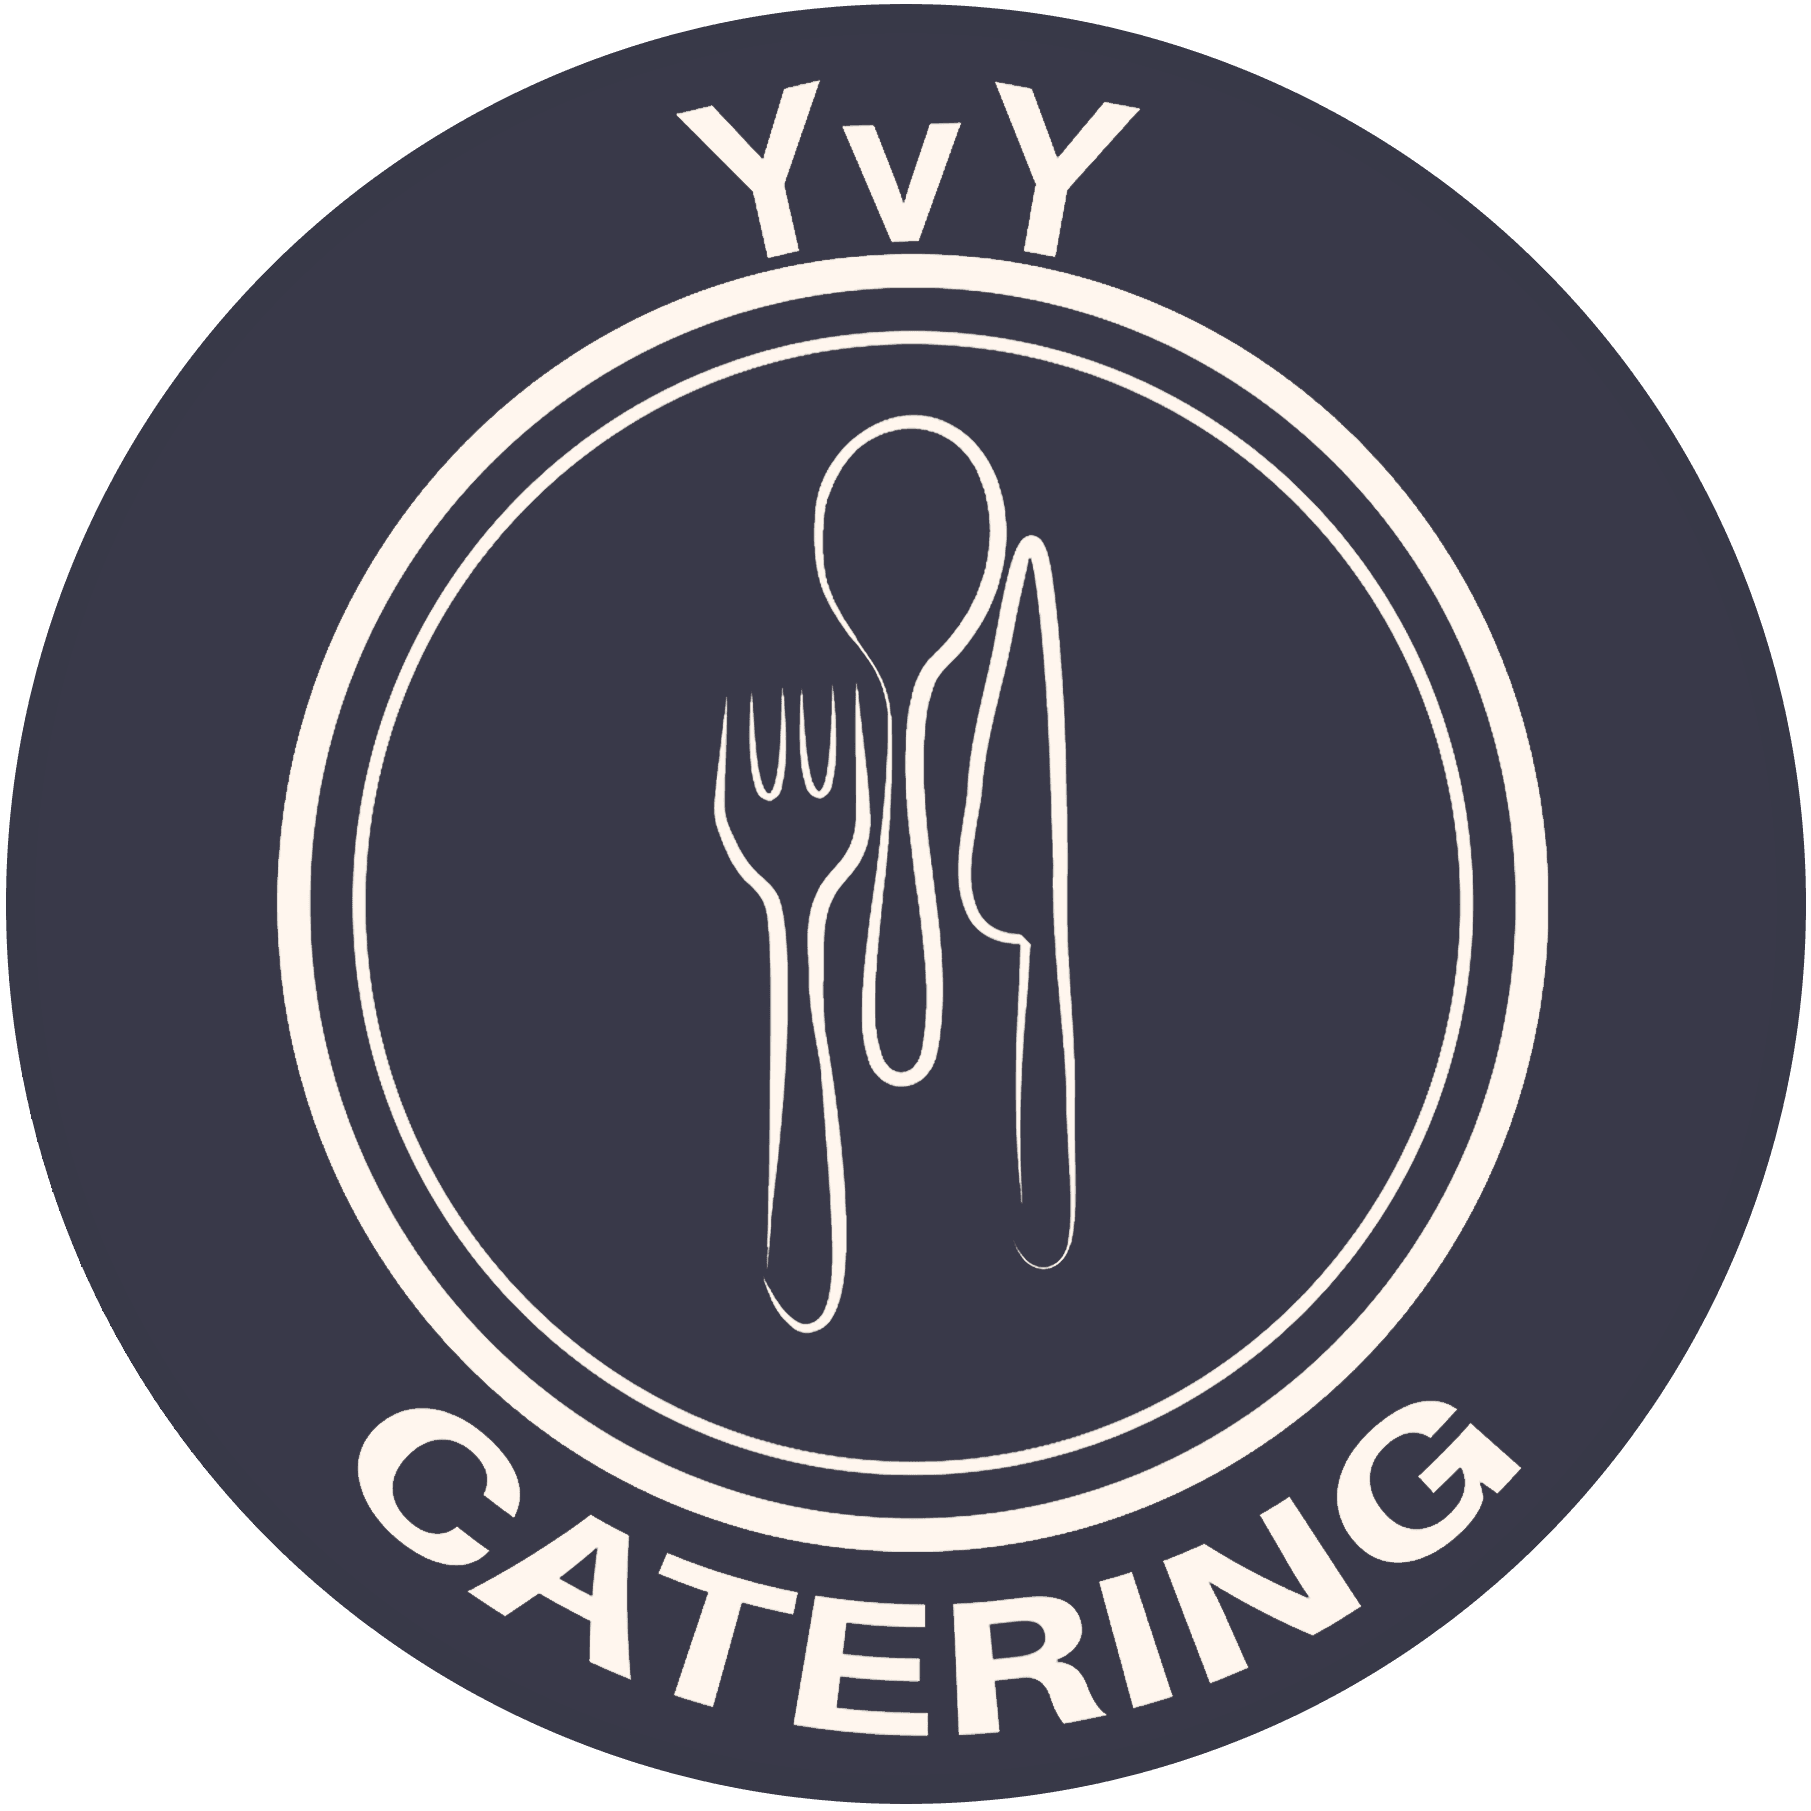 YvY Catering